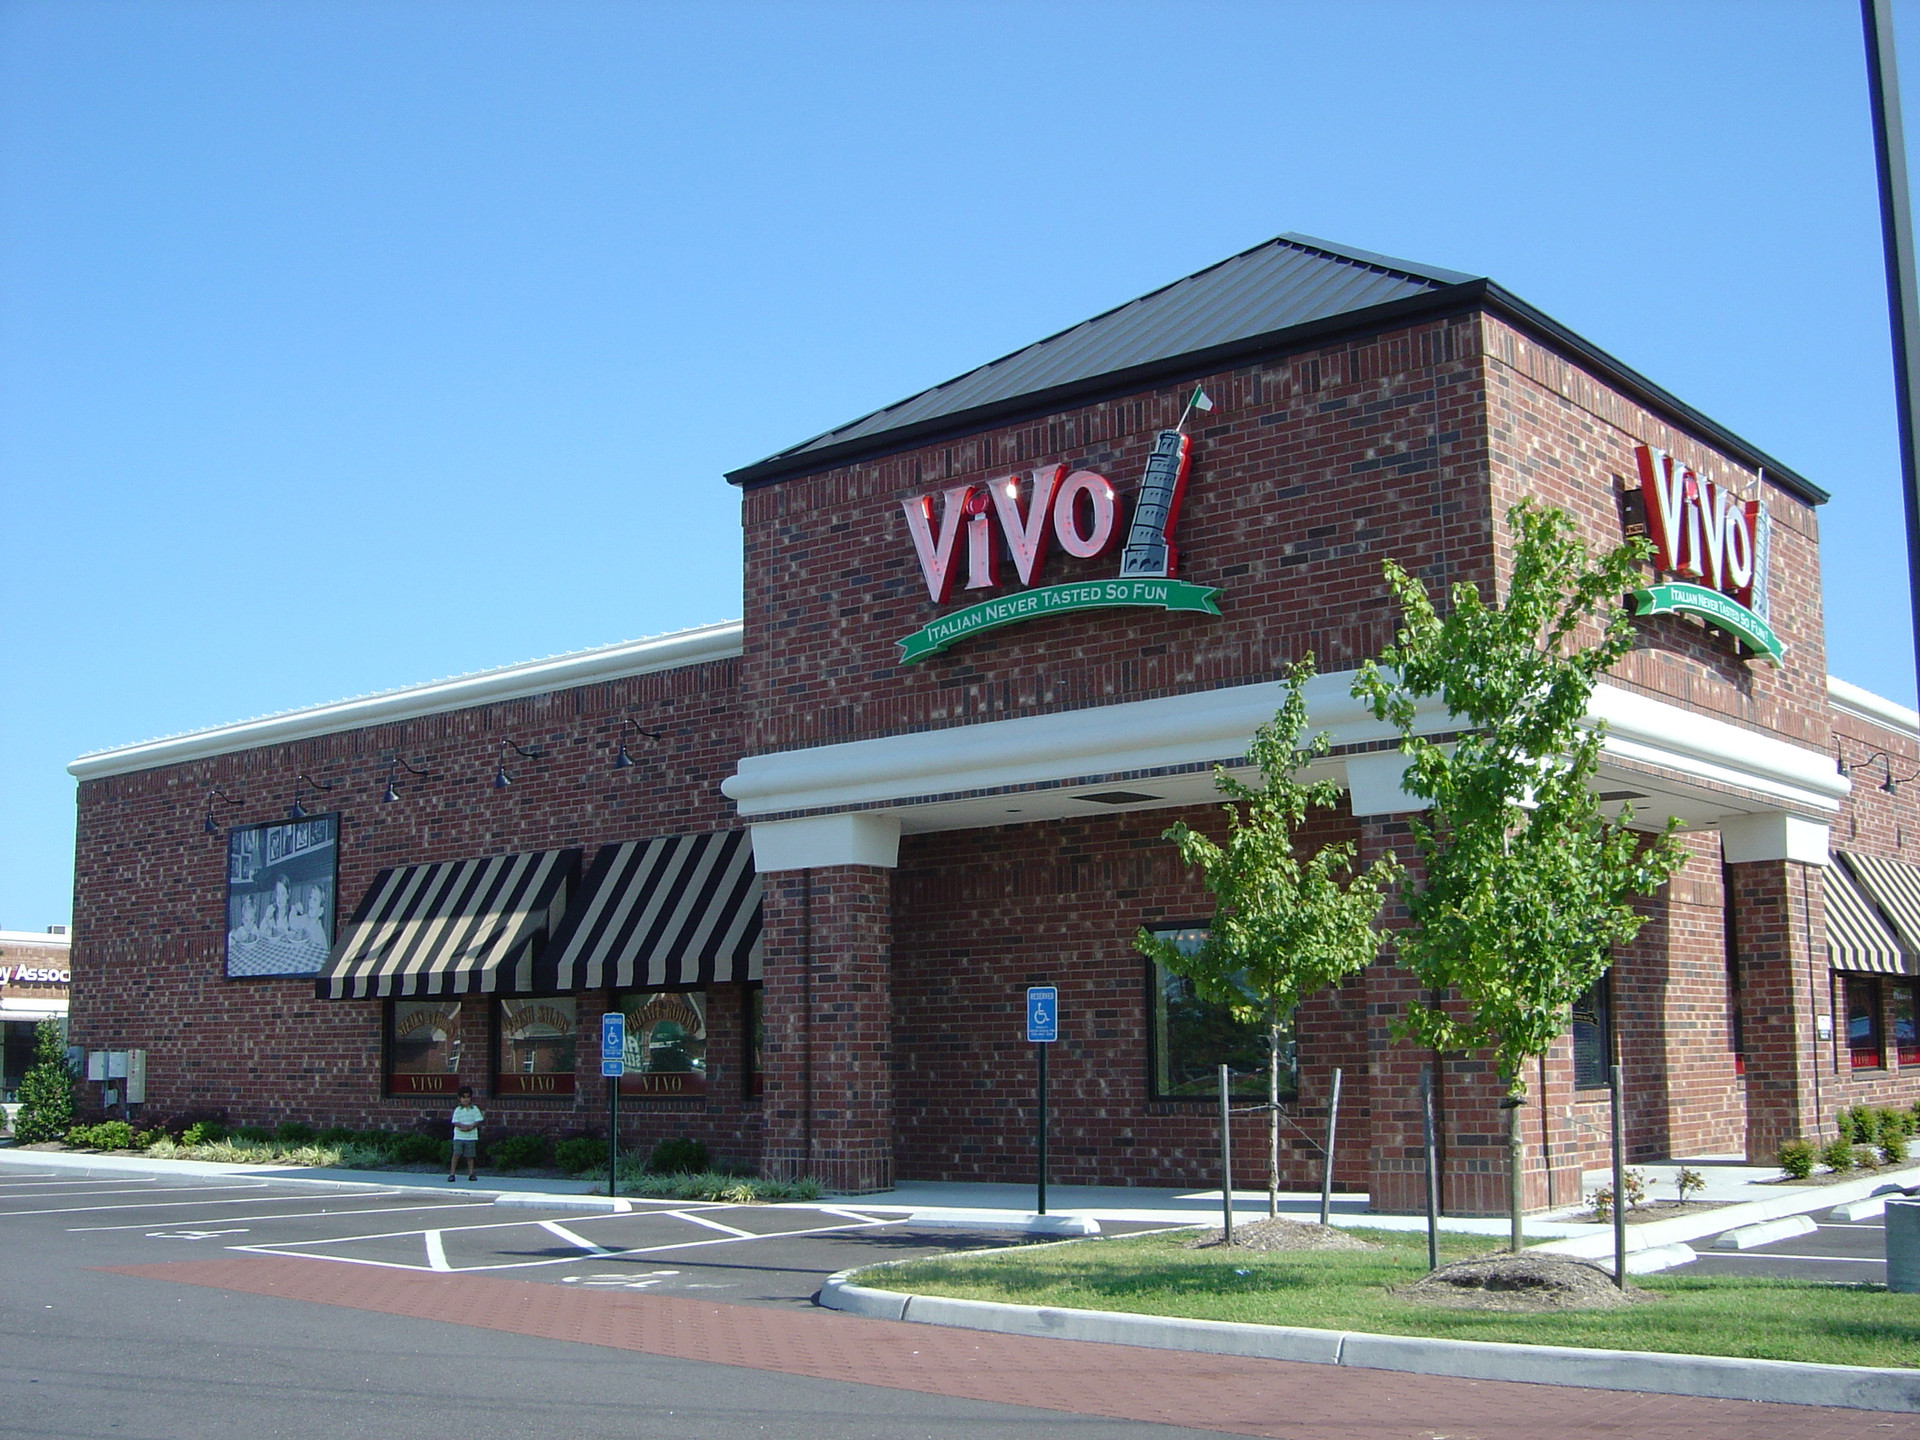 Vivo-Strawbridge-elevation copy.jpg